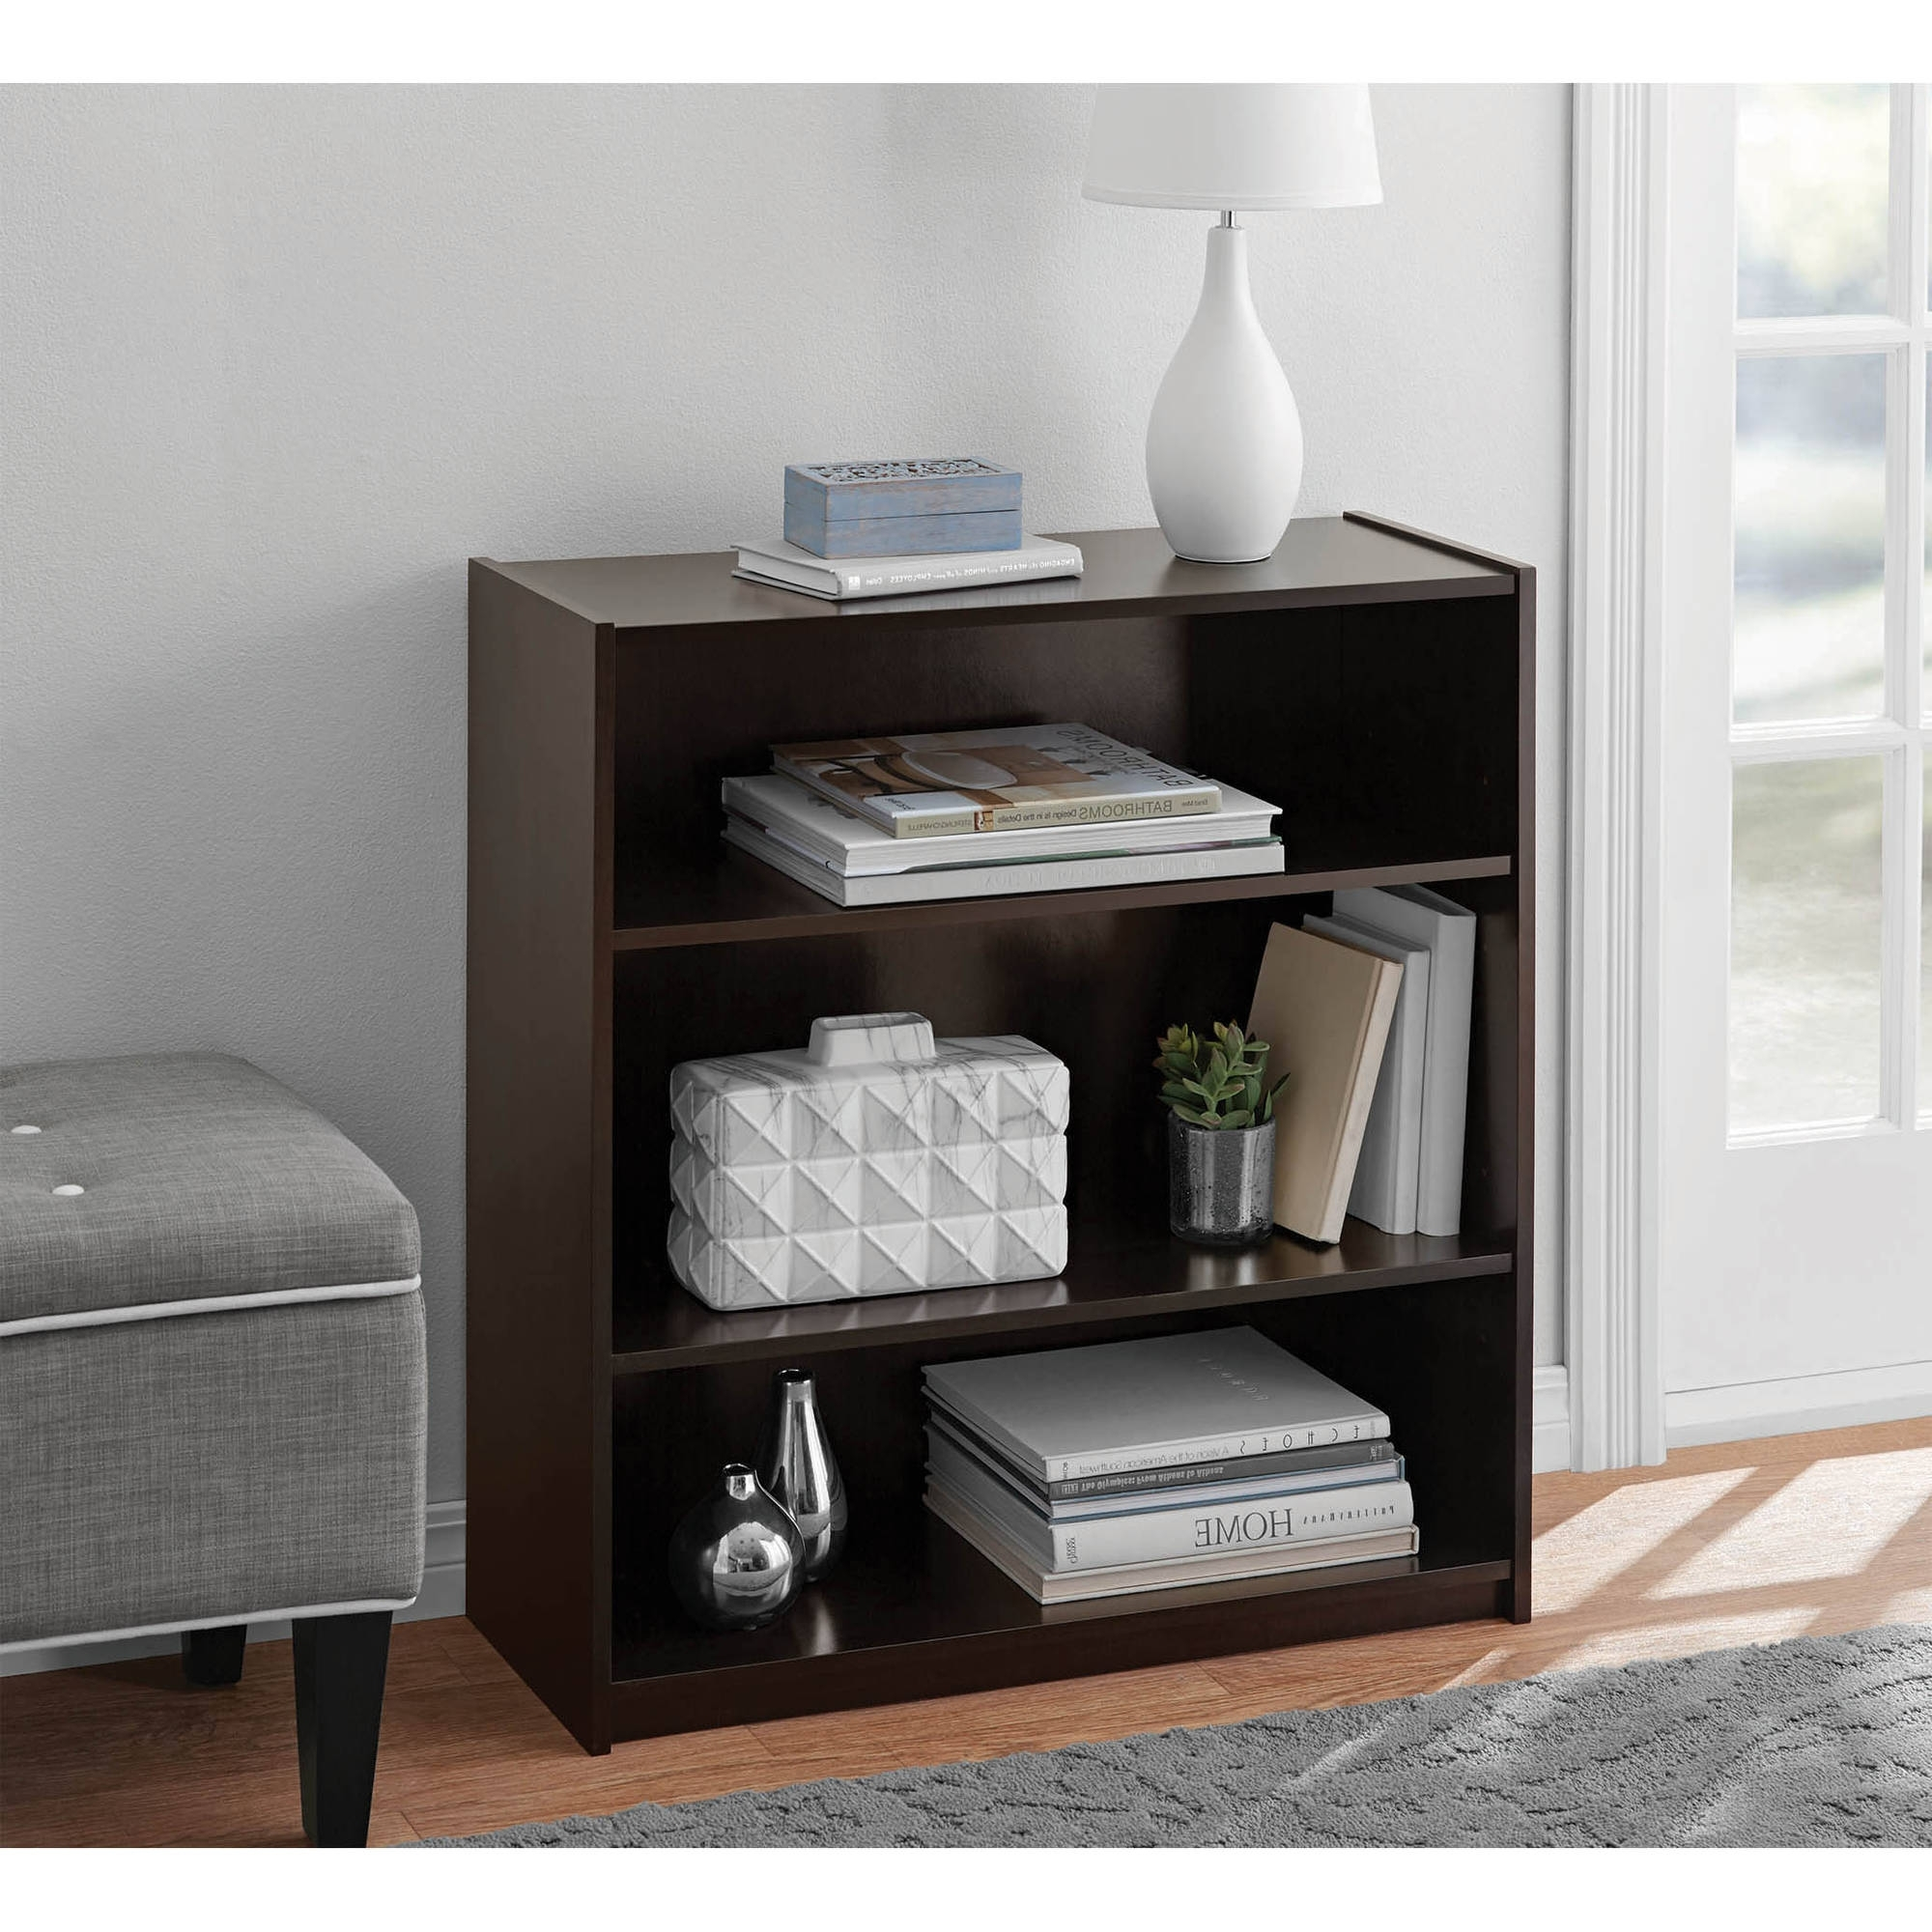 Best And Newest Walmart 3 Shelf Bookcases Regarding Mainstays 3 Shelf Standard Bookcase, Multiple Colors – Walmart (View 10 of 15)